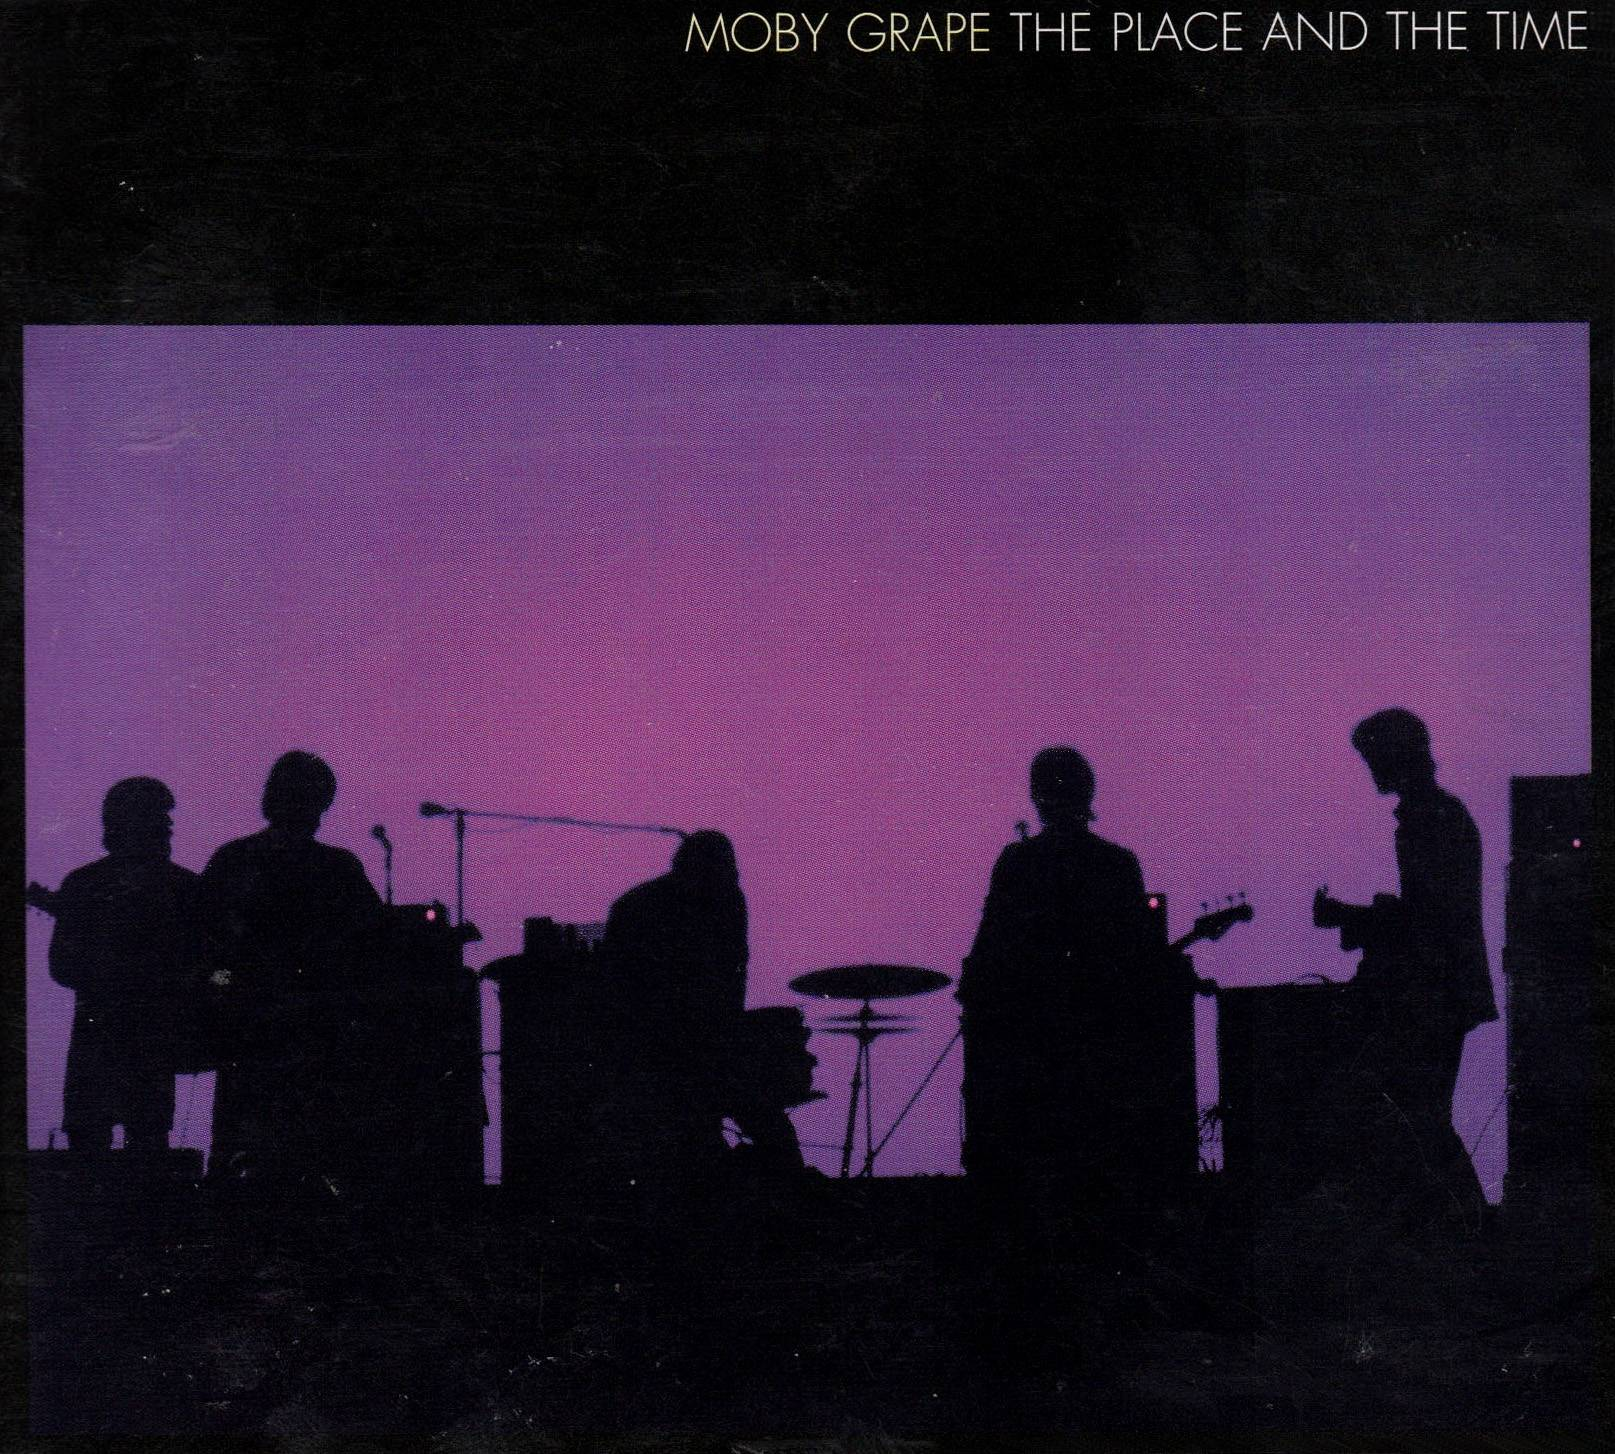 Moby Grape - The Place And The Time (2009)